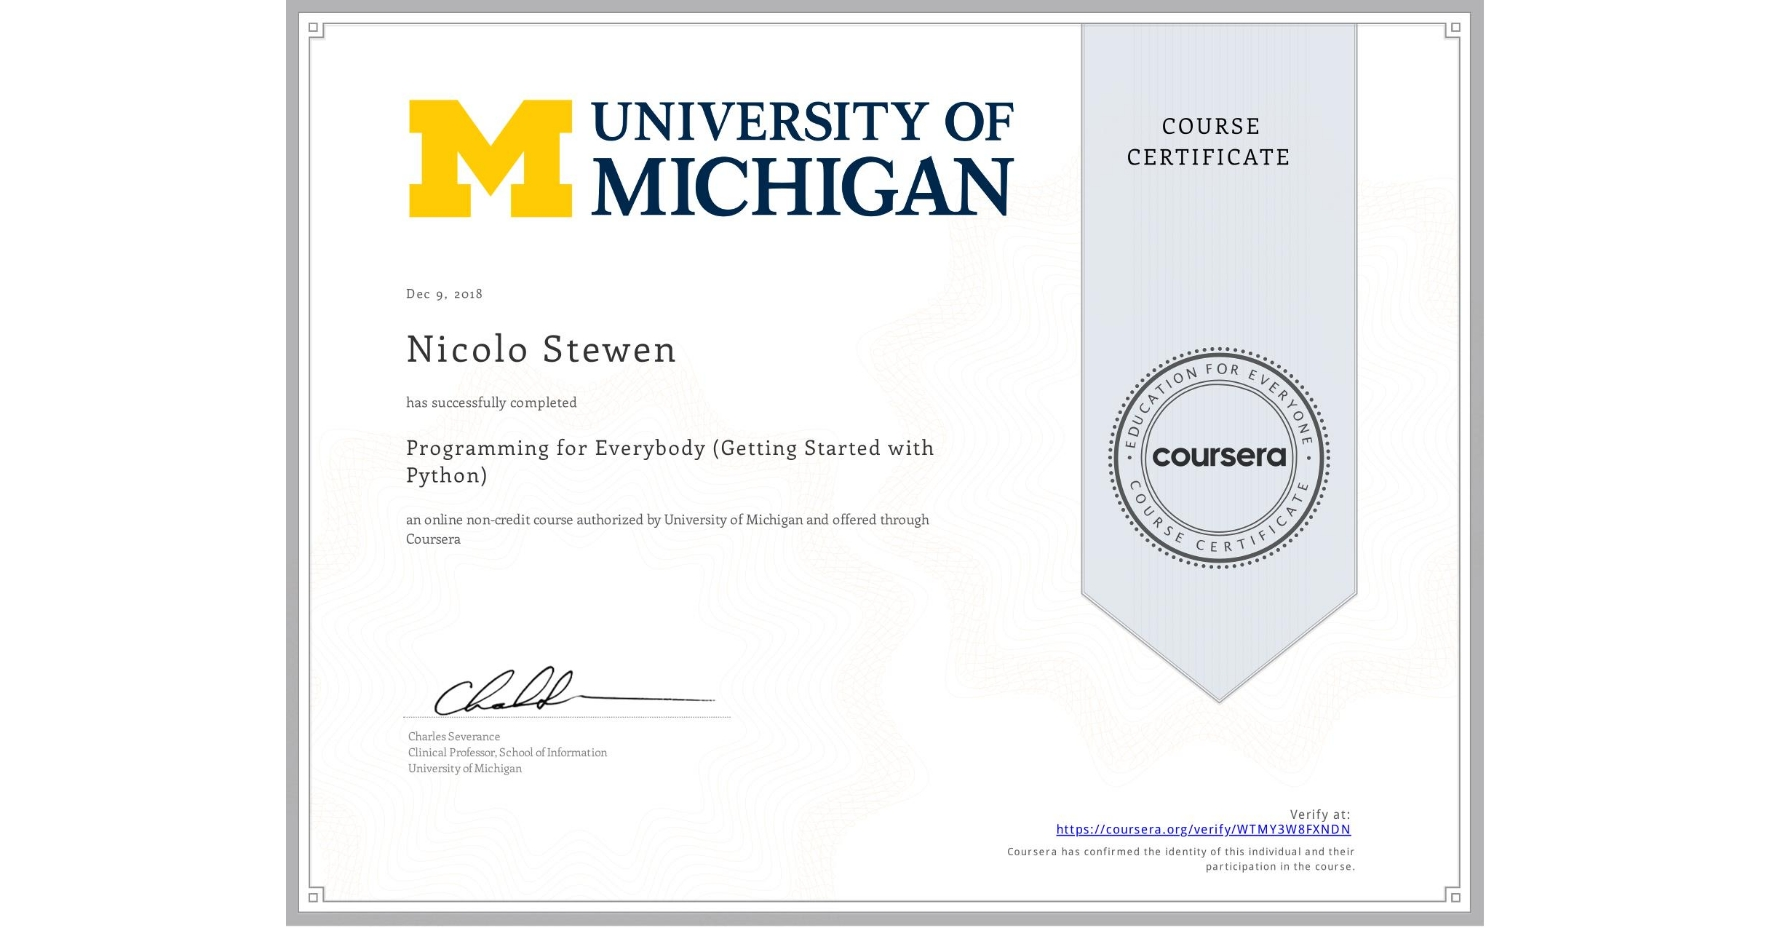 View certificate for Nicolo Stewen, Programming for Everybody (Getting Started with Python), an online non-credit course authorized by University of Michigan and offered through Coursera